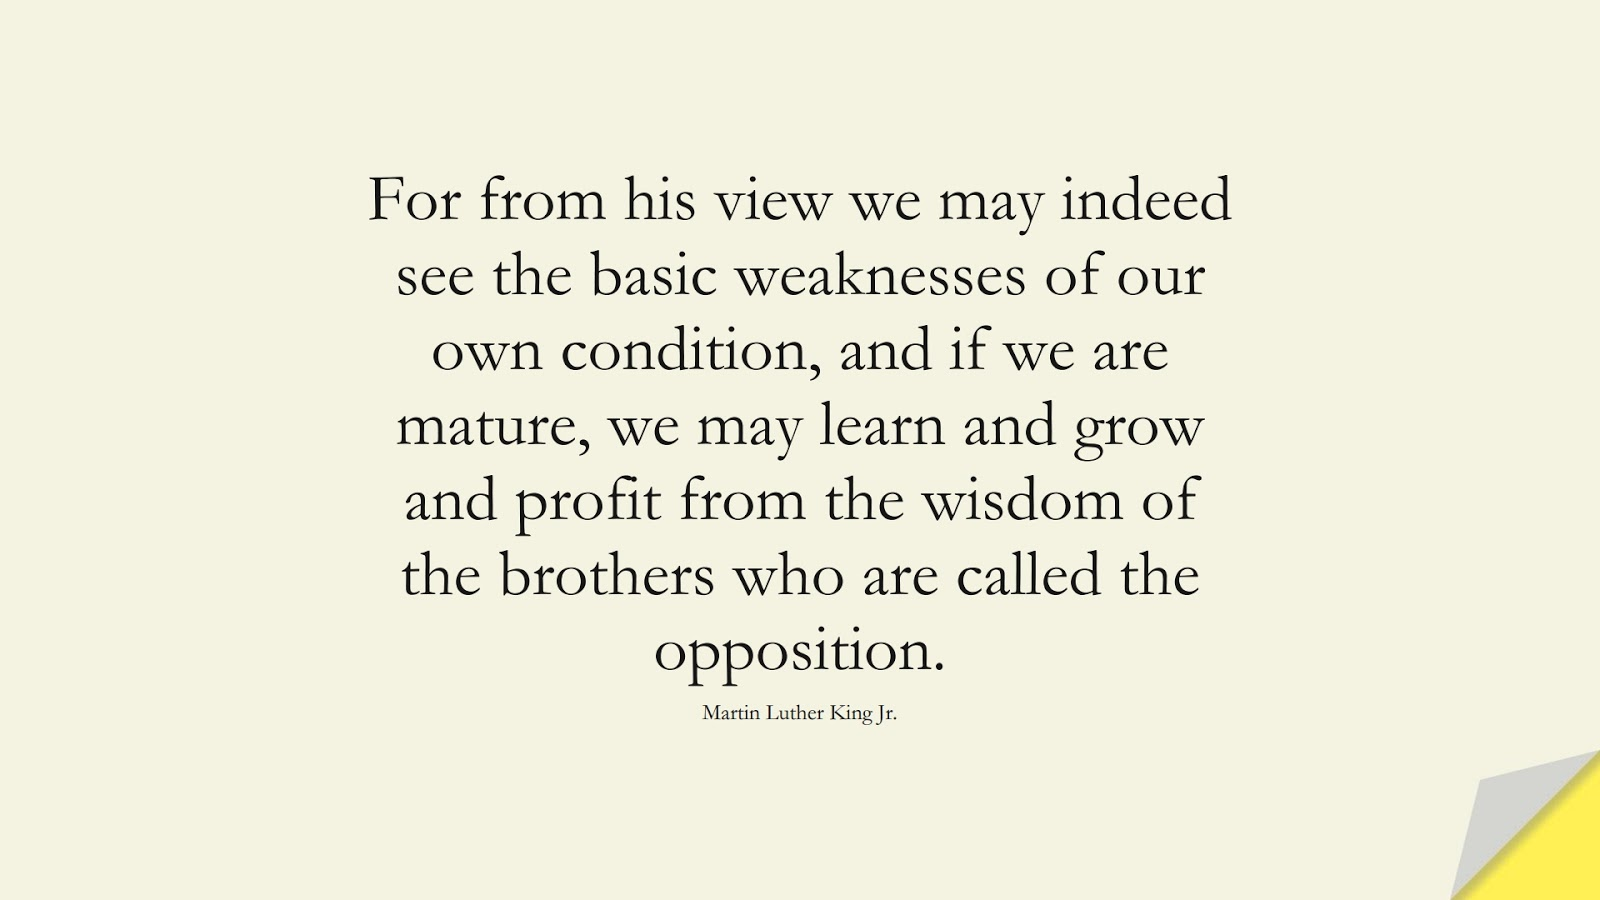 For from his view we may indeed see the basic weaknesses of our own condition, and if we are mature, we may learn and grow and profit from the wisdom of the brothers who are called the opposition. (Martin Luther King Jr.);  #MartinLutherKingJrQuotes